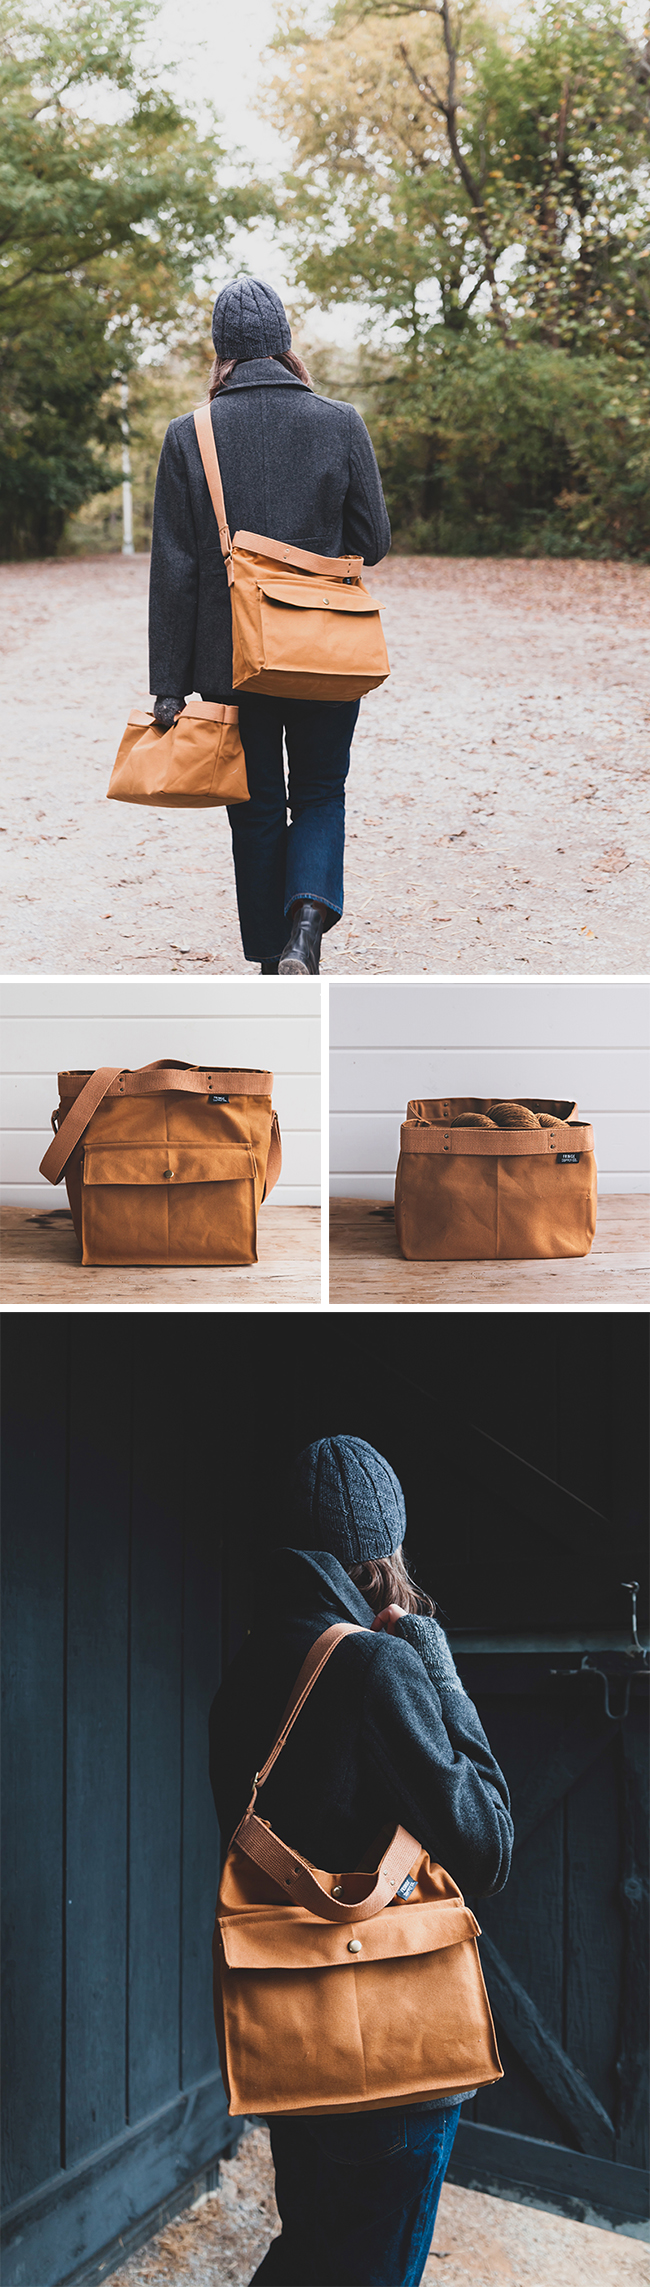 Fringe Supply Co. Rambler satchel and Porter Bin